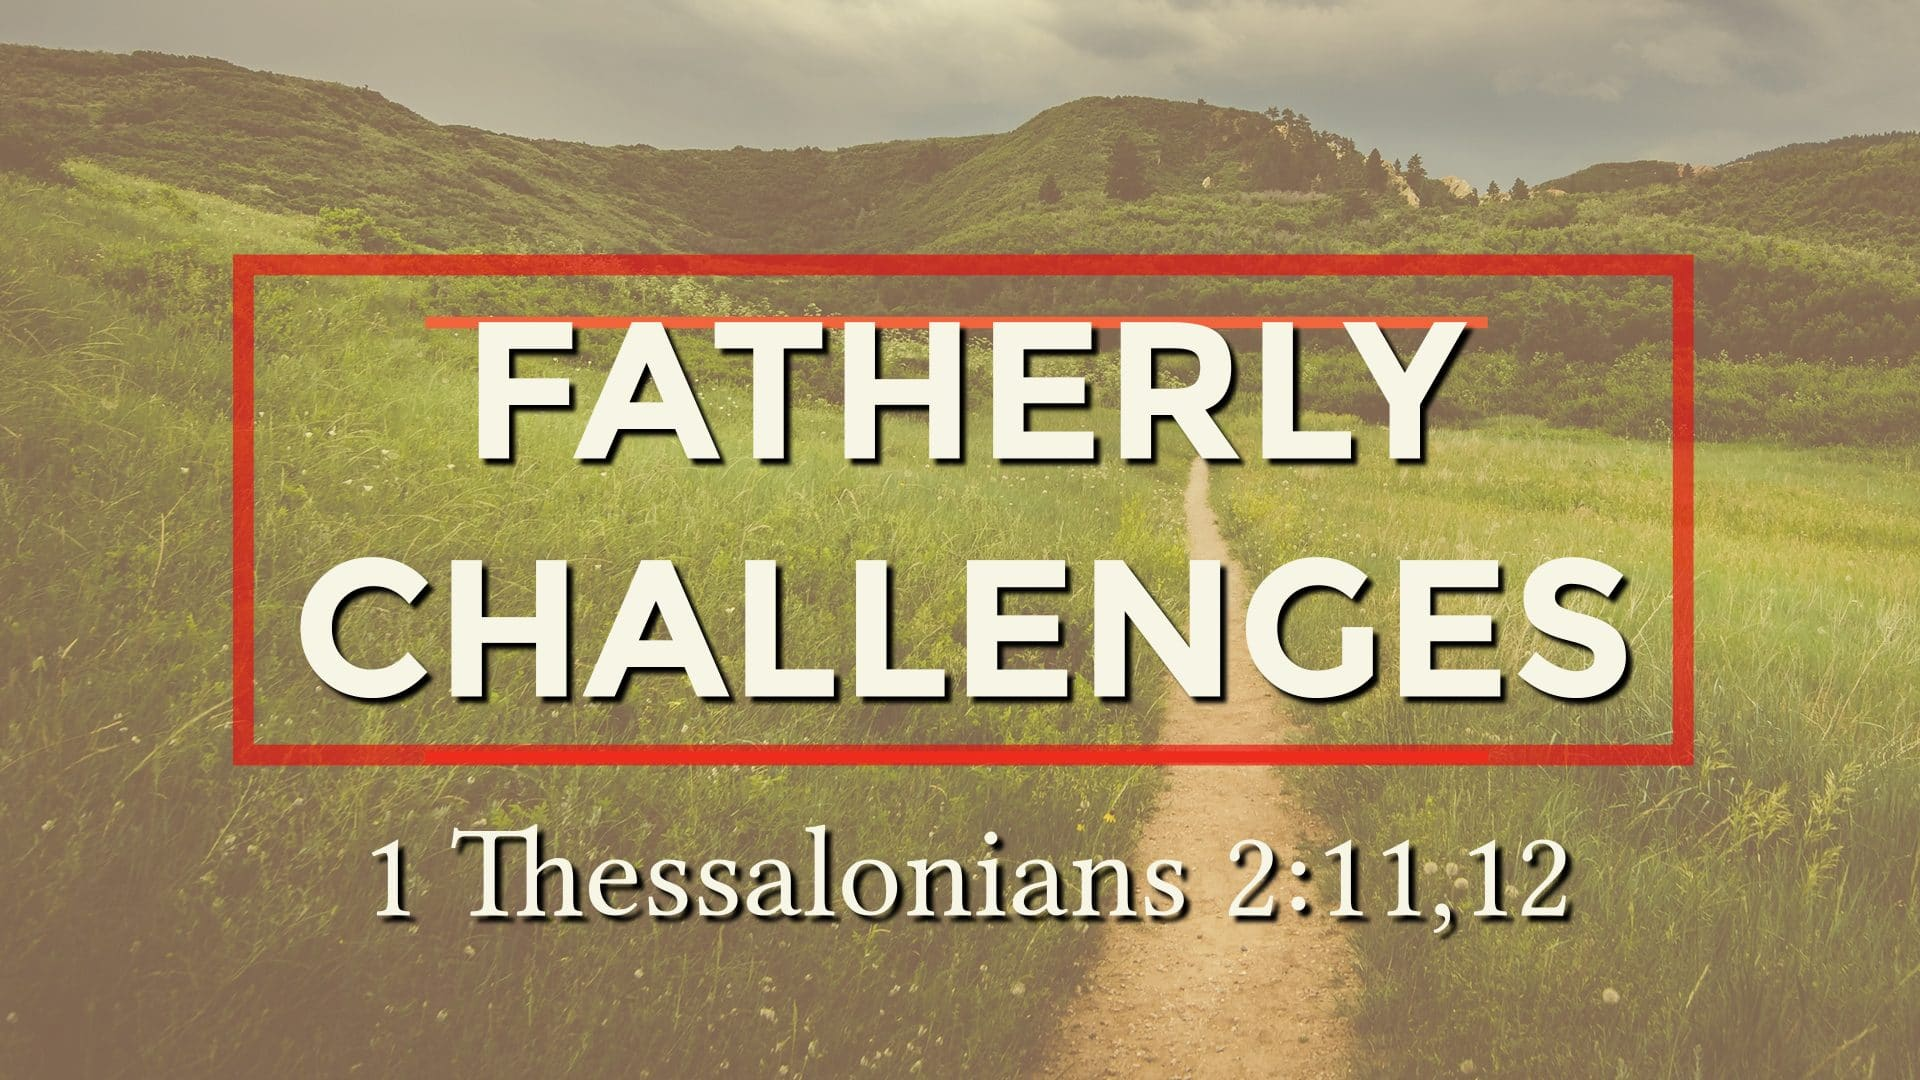 Fatherly Challenges